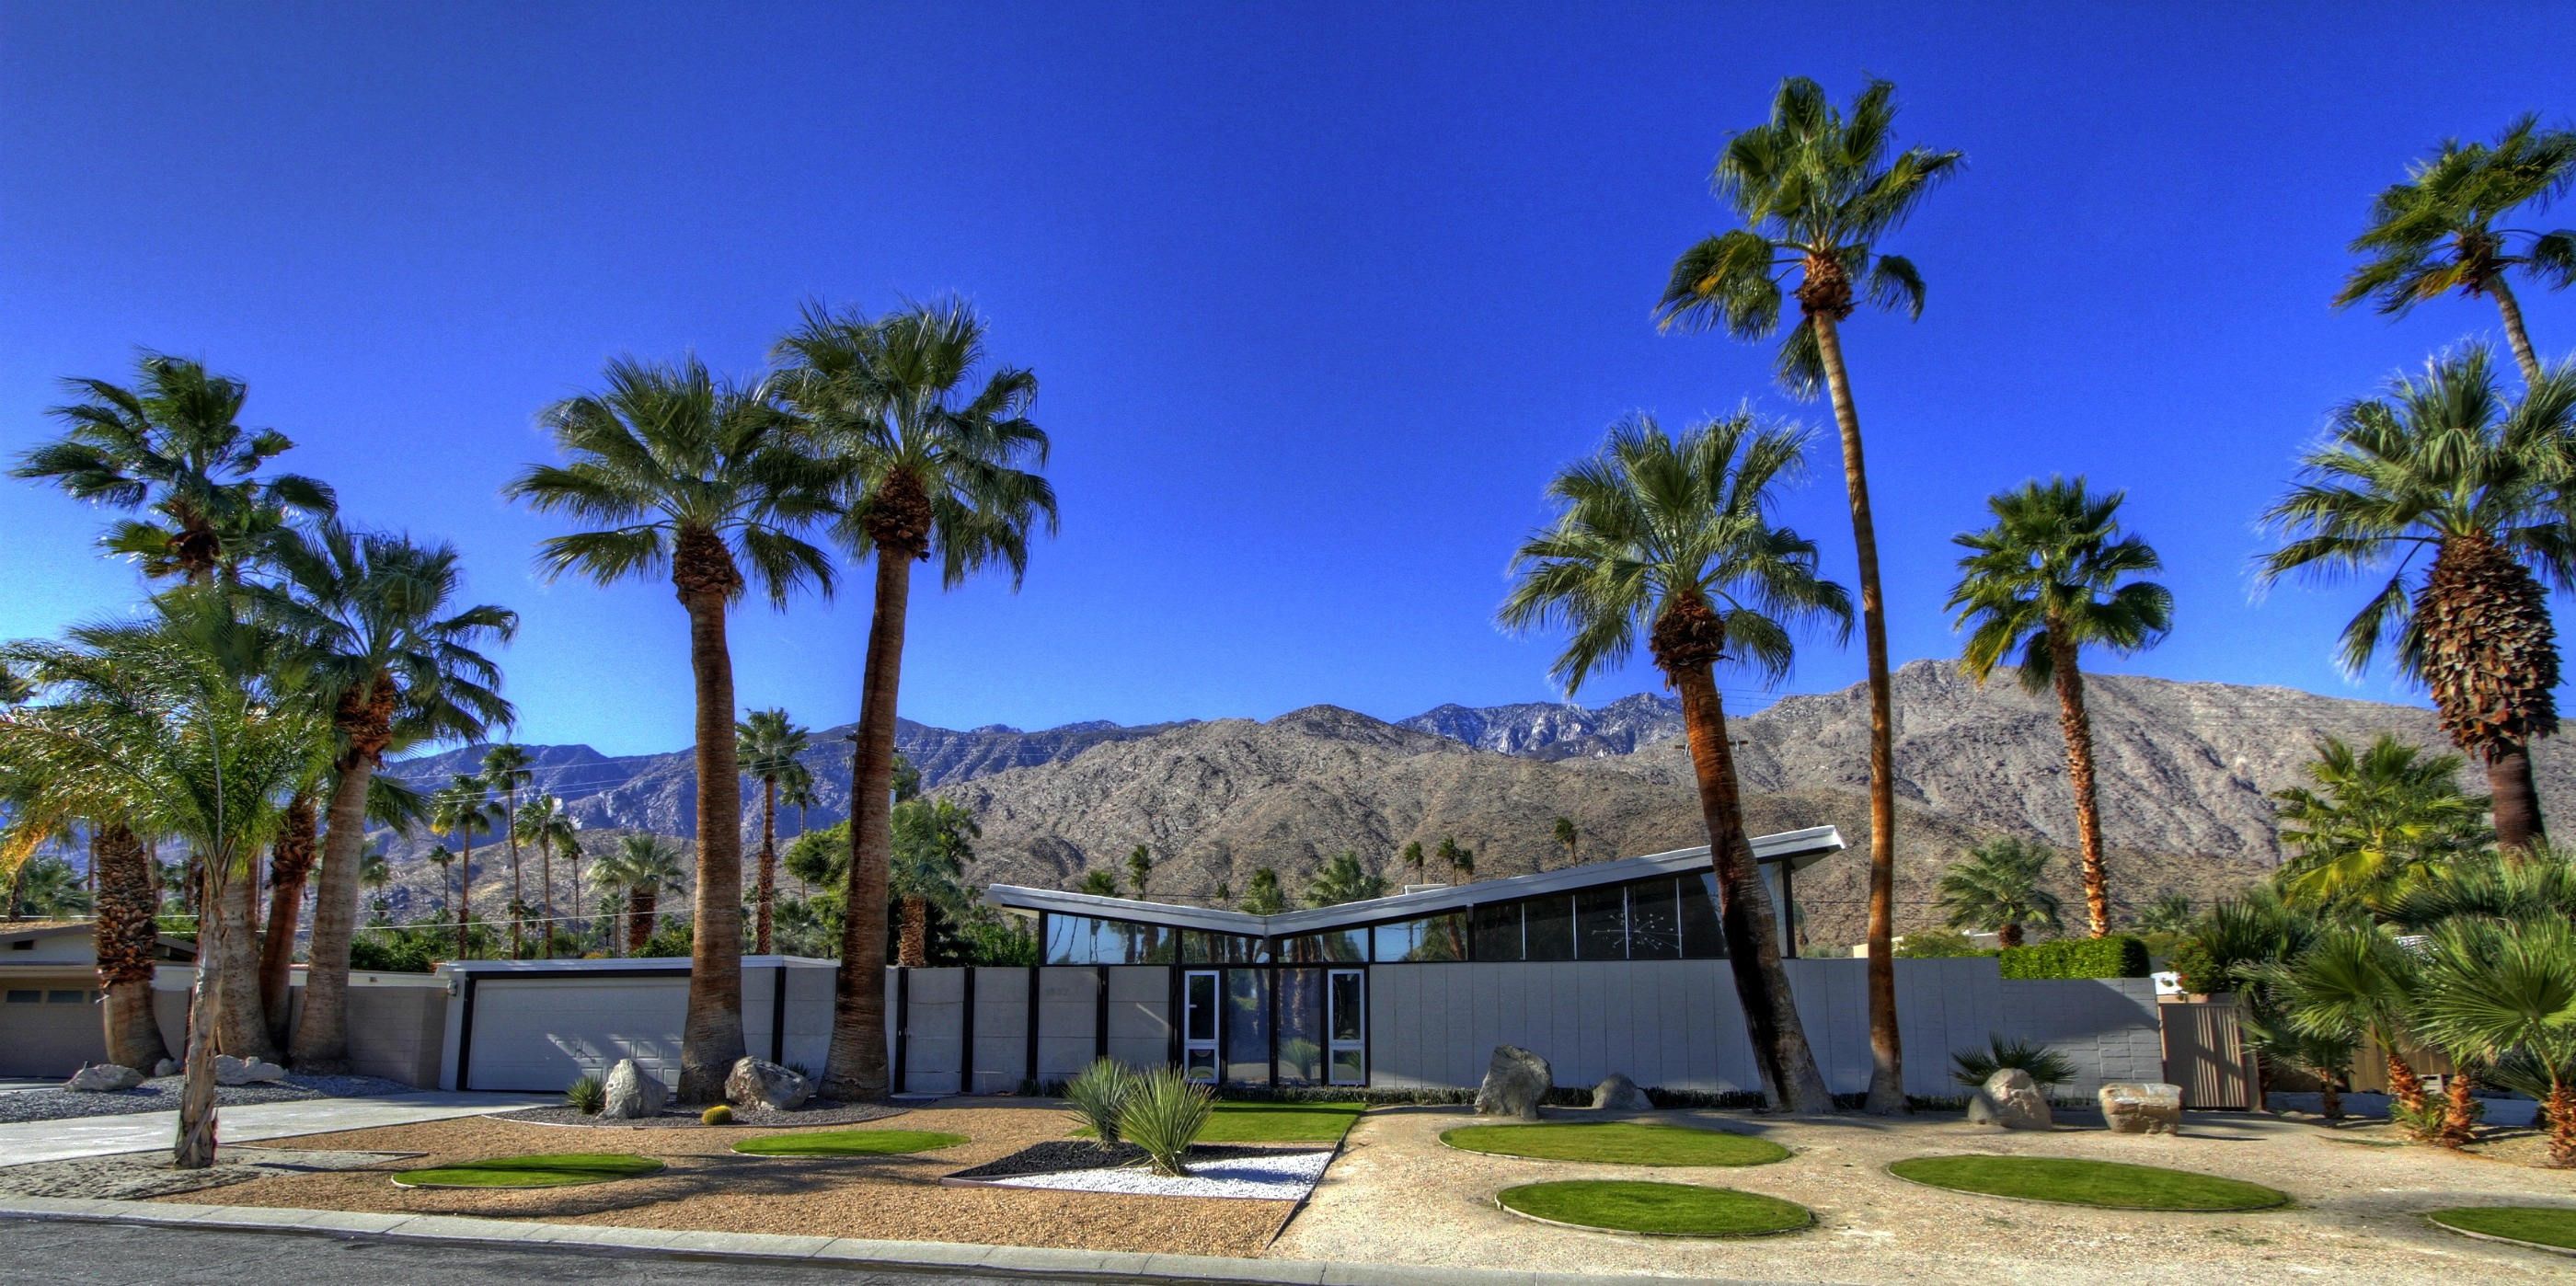 Los angeles cool road trip top things to do in palm for New modern homes palm springs